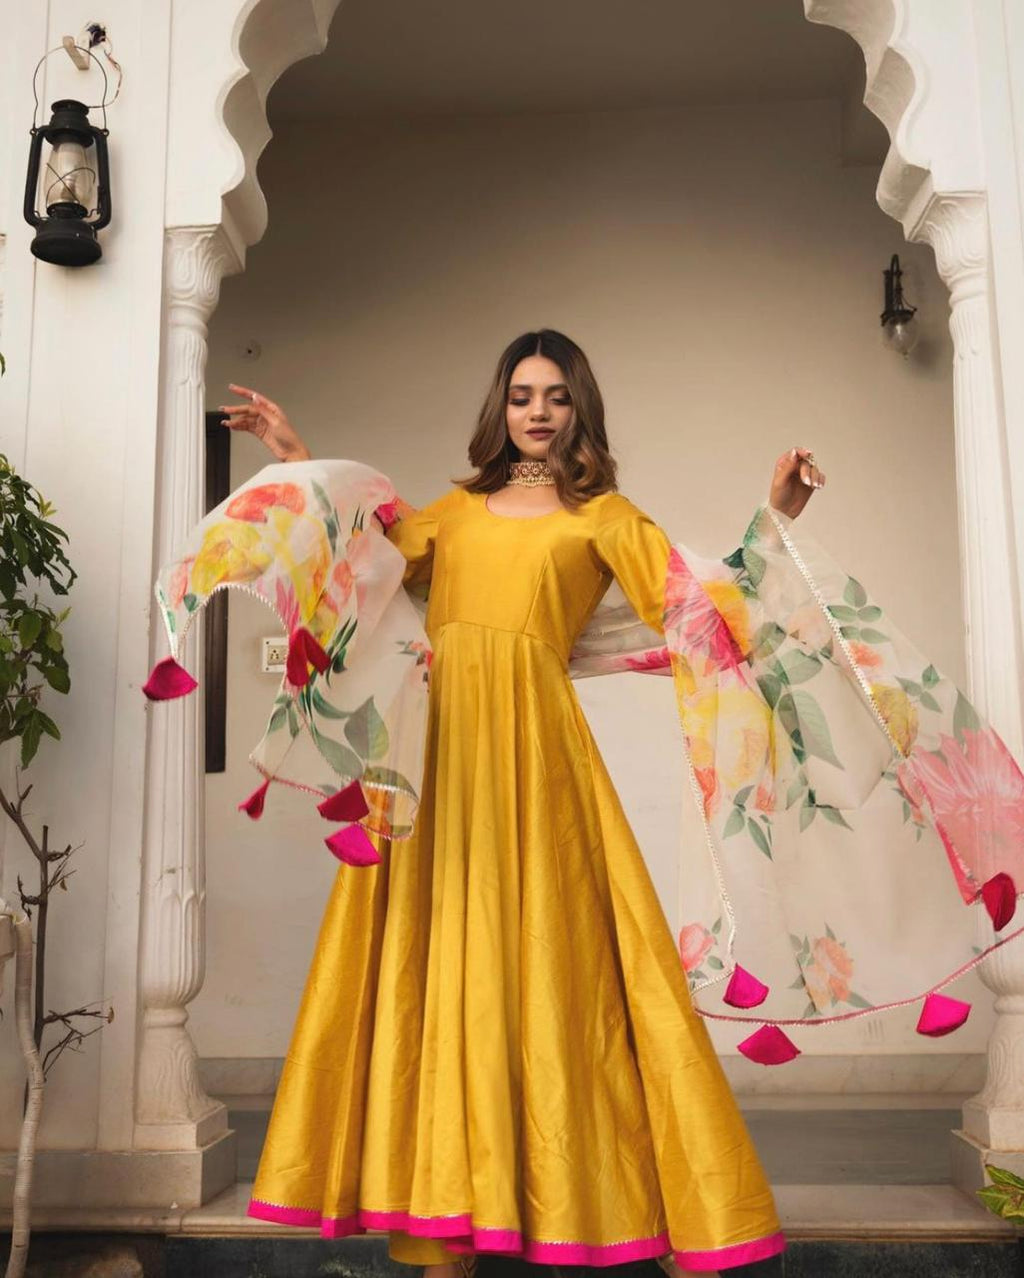 Beautiful  Mustard Yellow  Heavy Ghera Rayon Gown With Bijia Lace at The Yoke & Pure Organza Dupatta